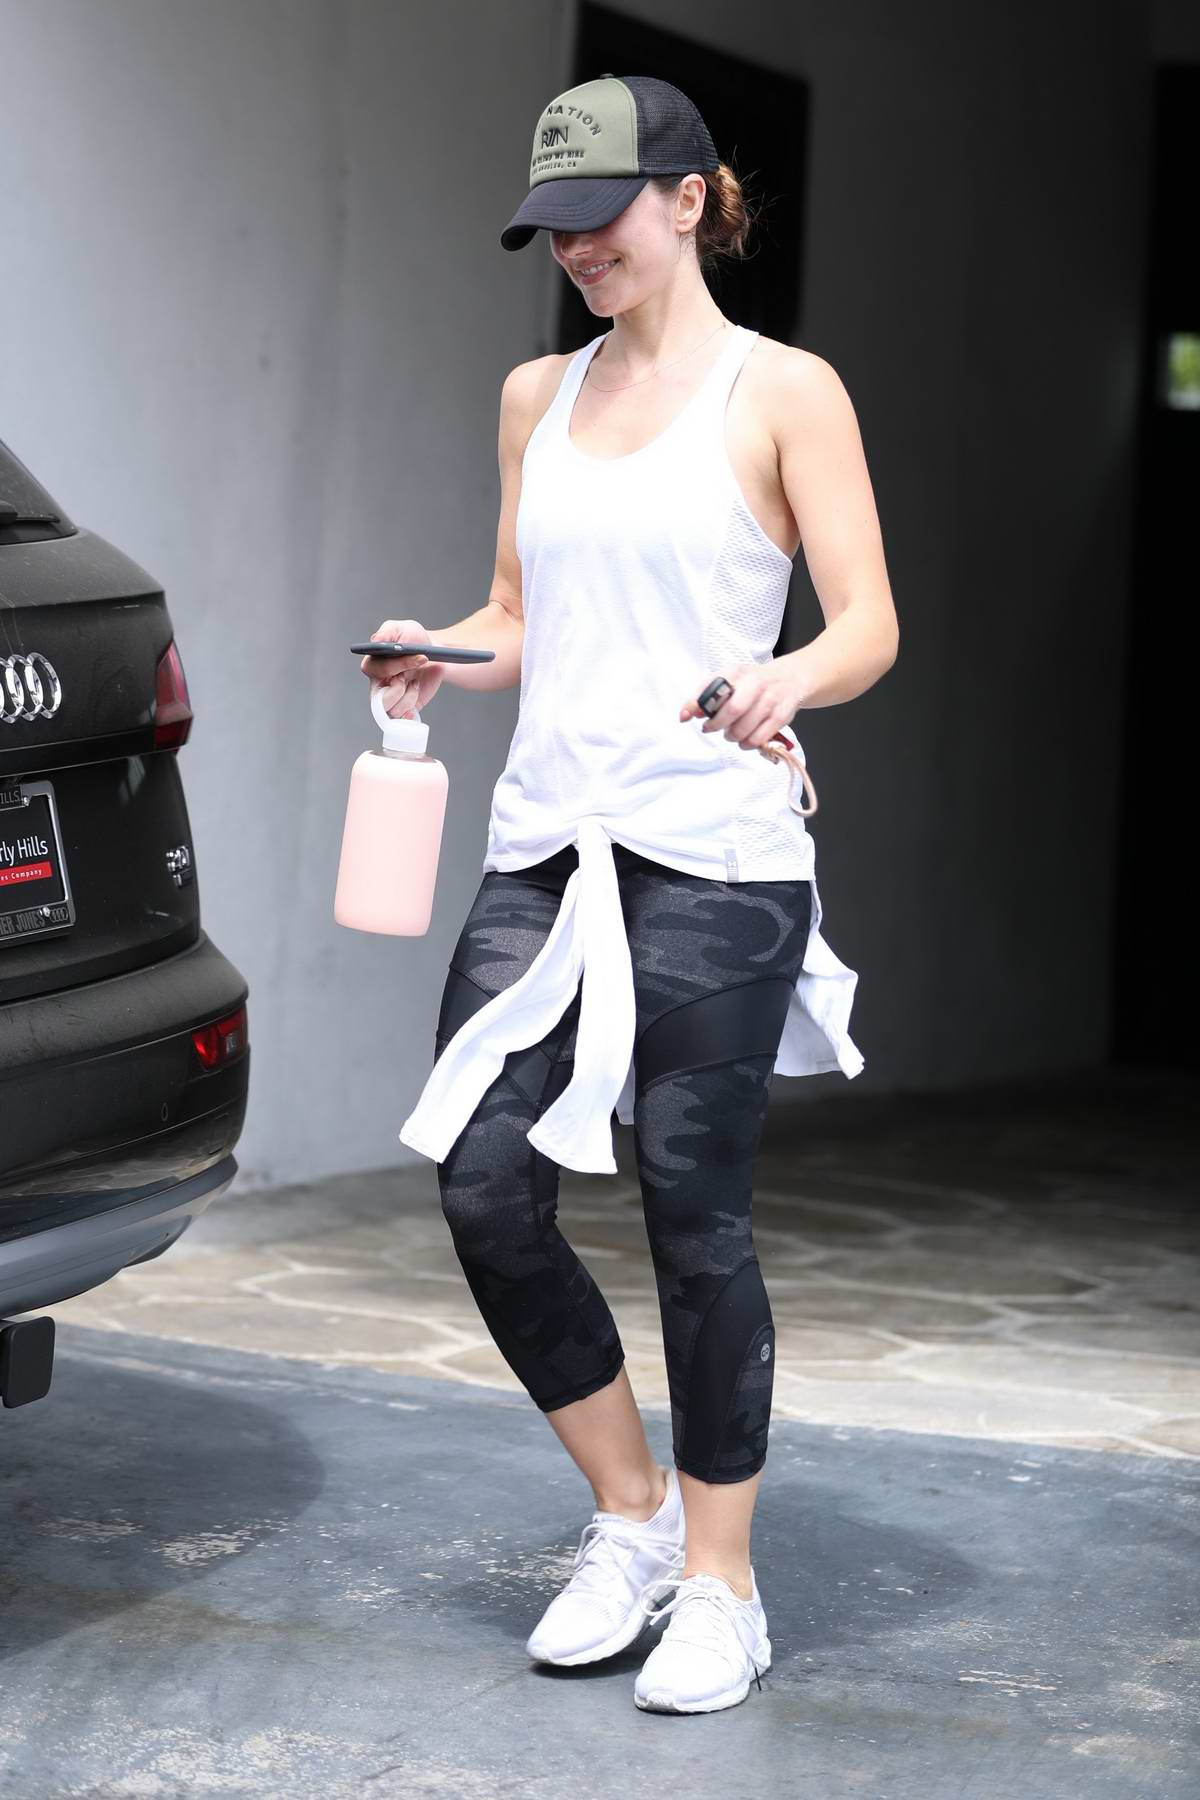 Minka Kelly leaves the gym after a morning workout in West Hollywood, Los Angeles